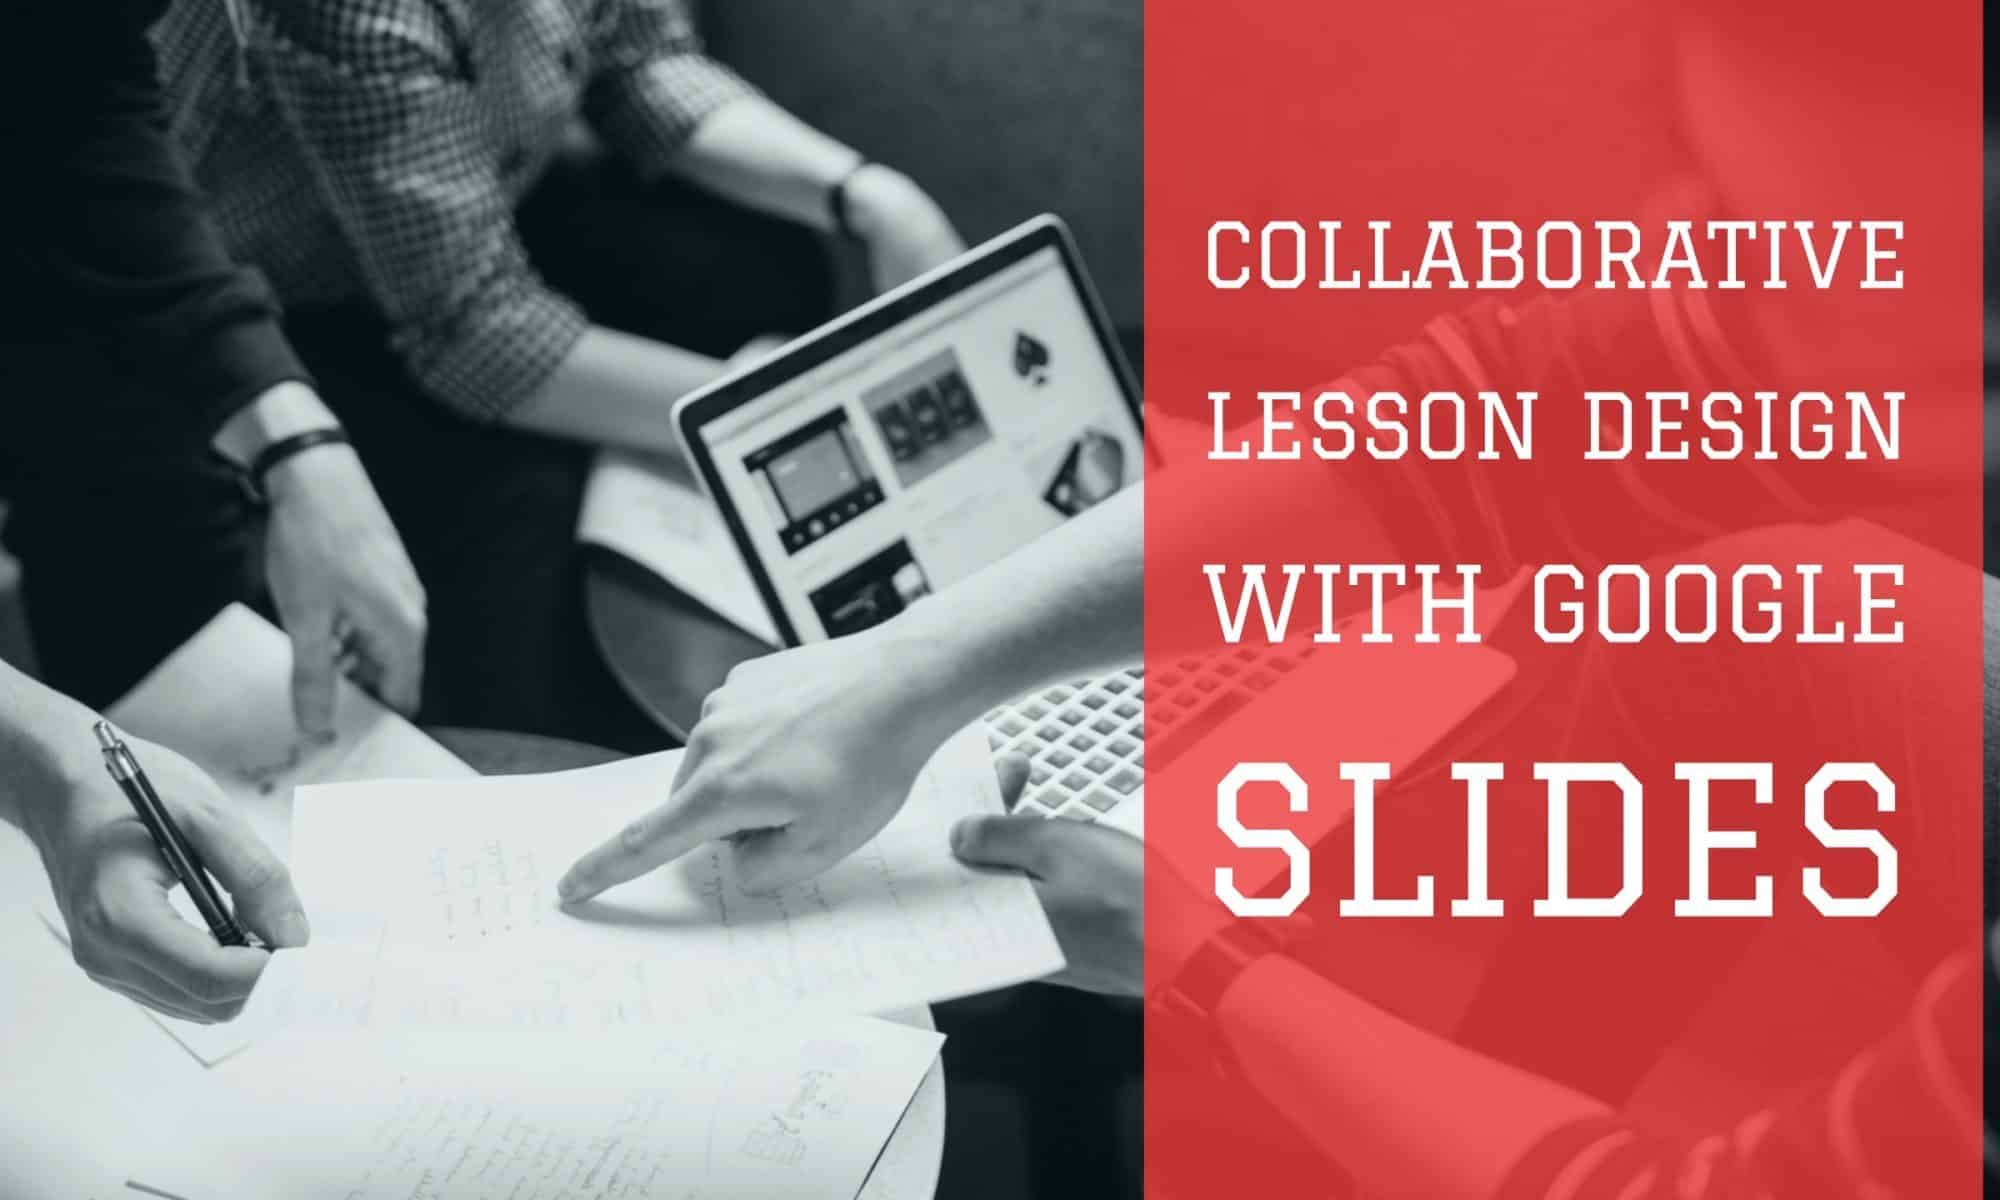 Collaborative Lesson Design with Google Slides